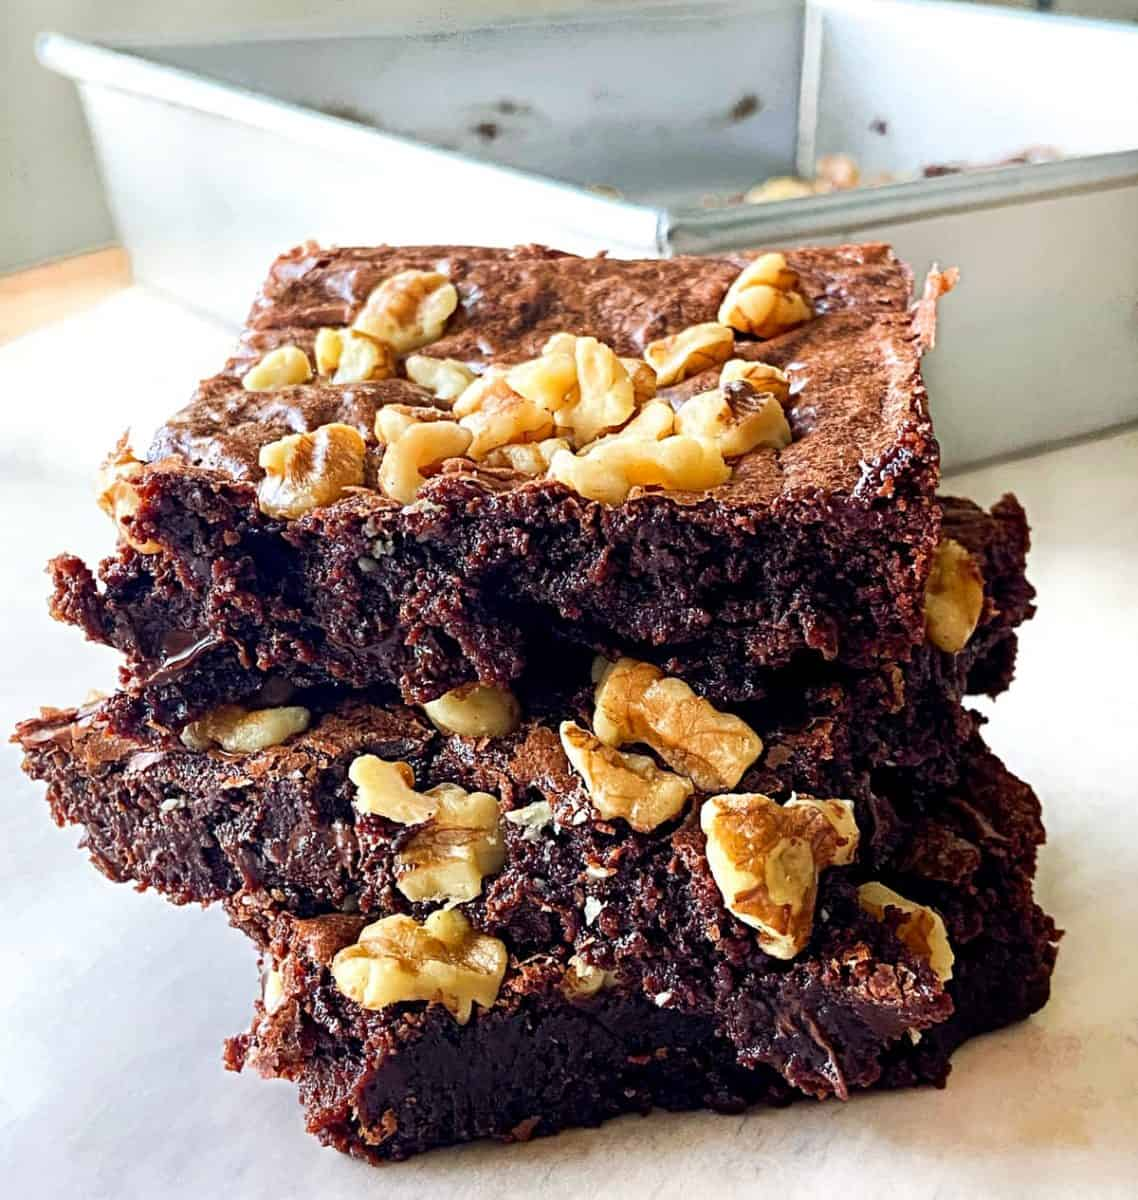 A small stack of brownies with walnuts on top.